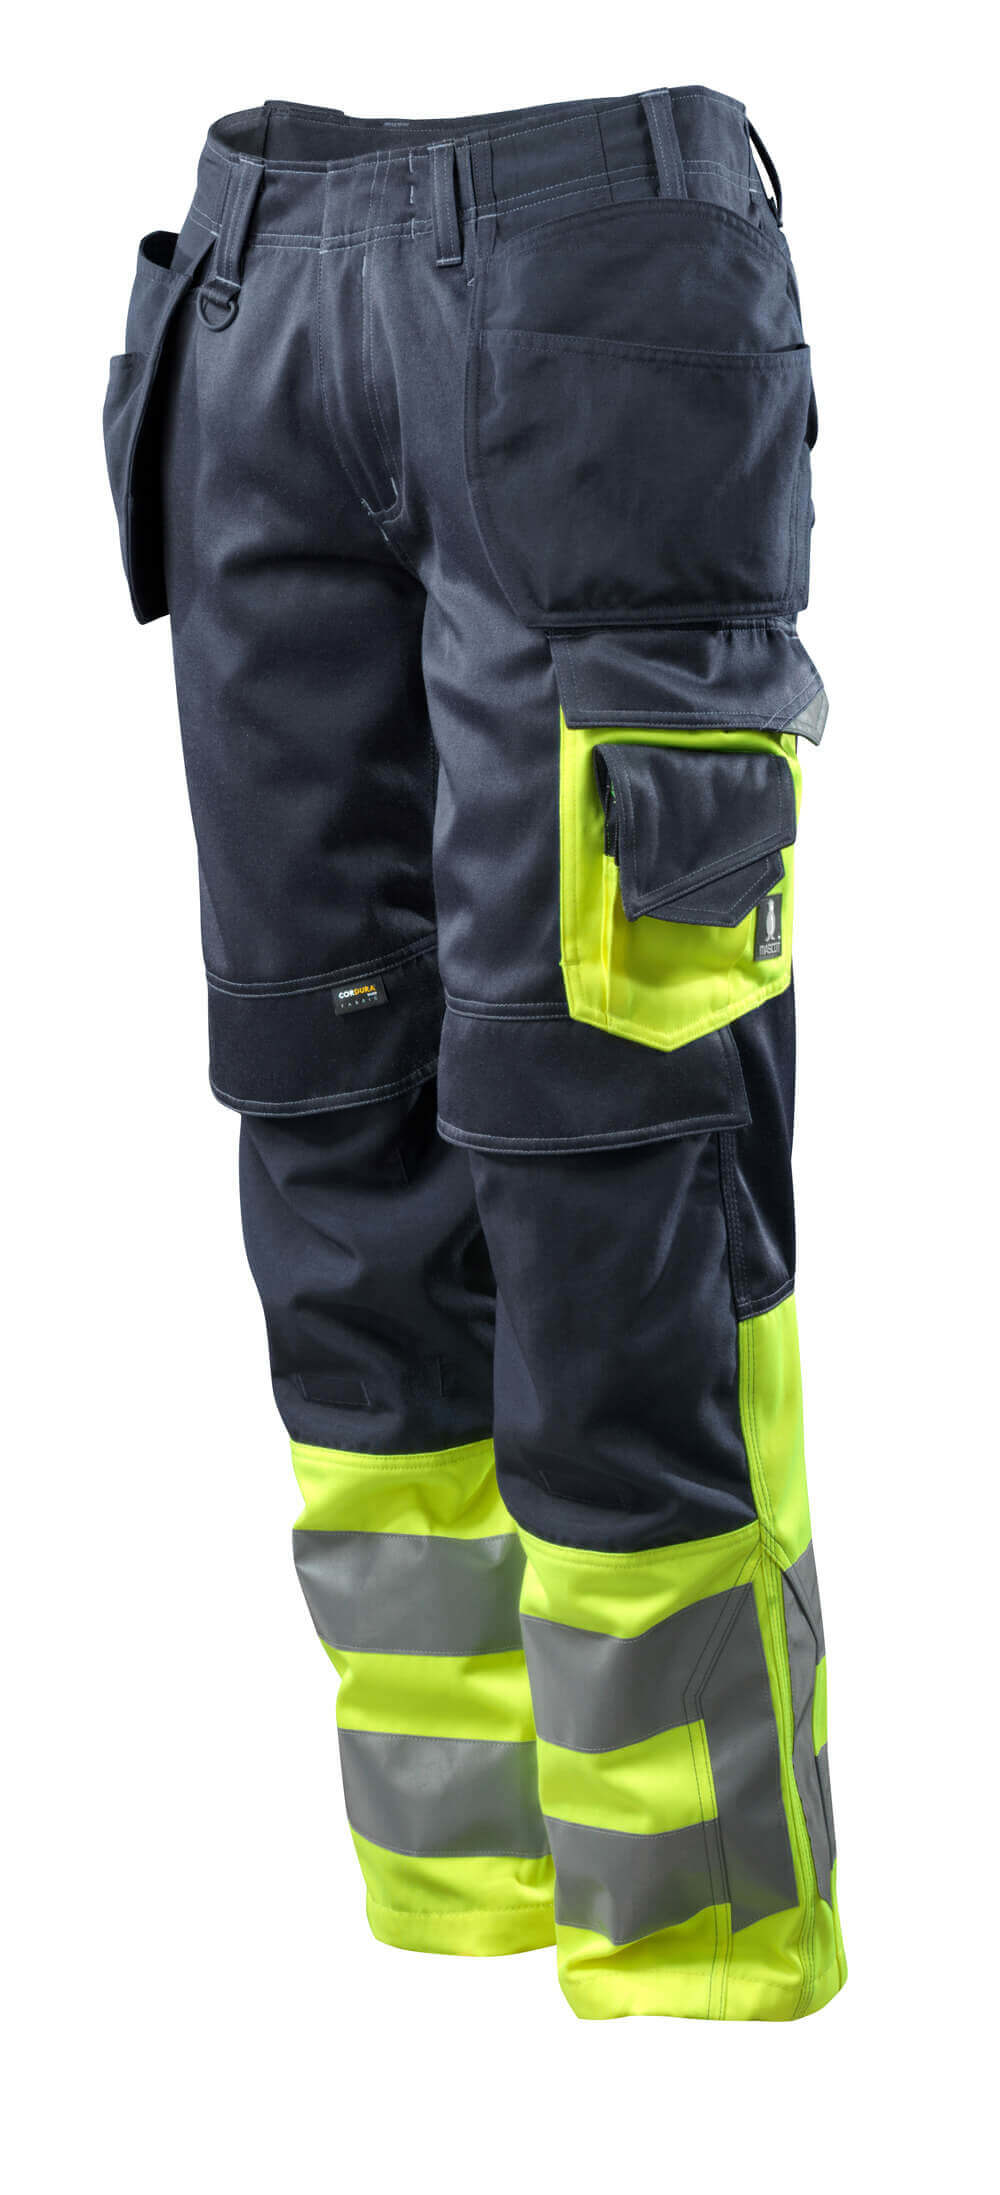 Trousers with holster pockets, class 1